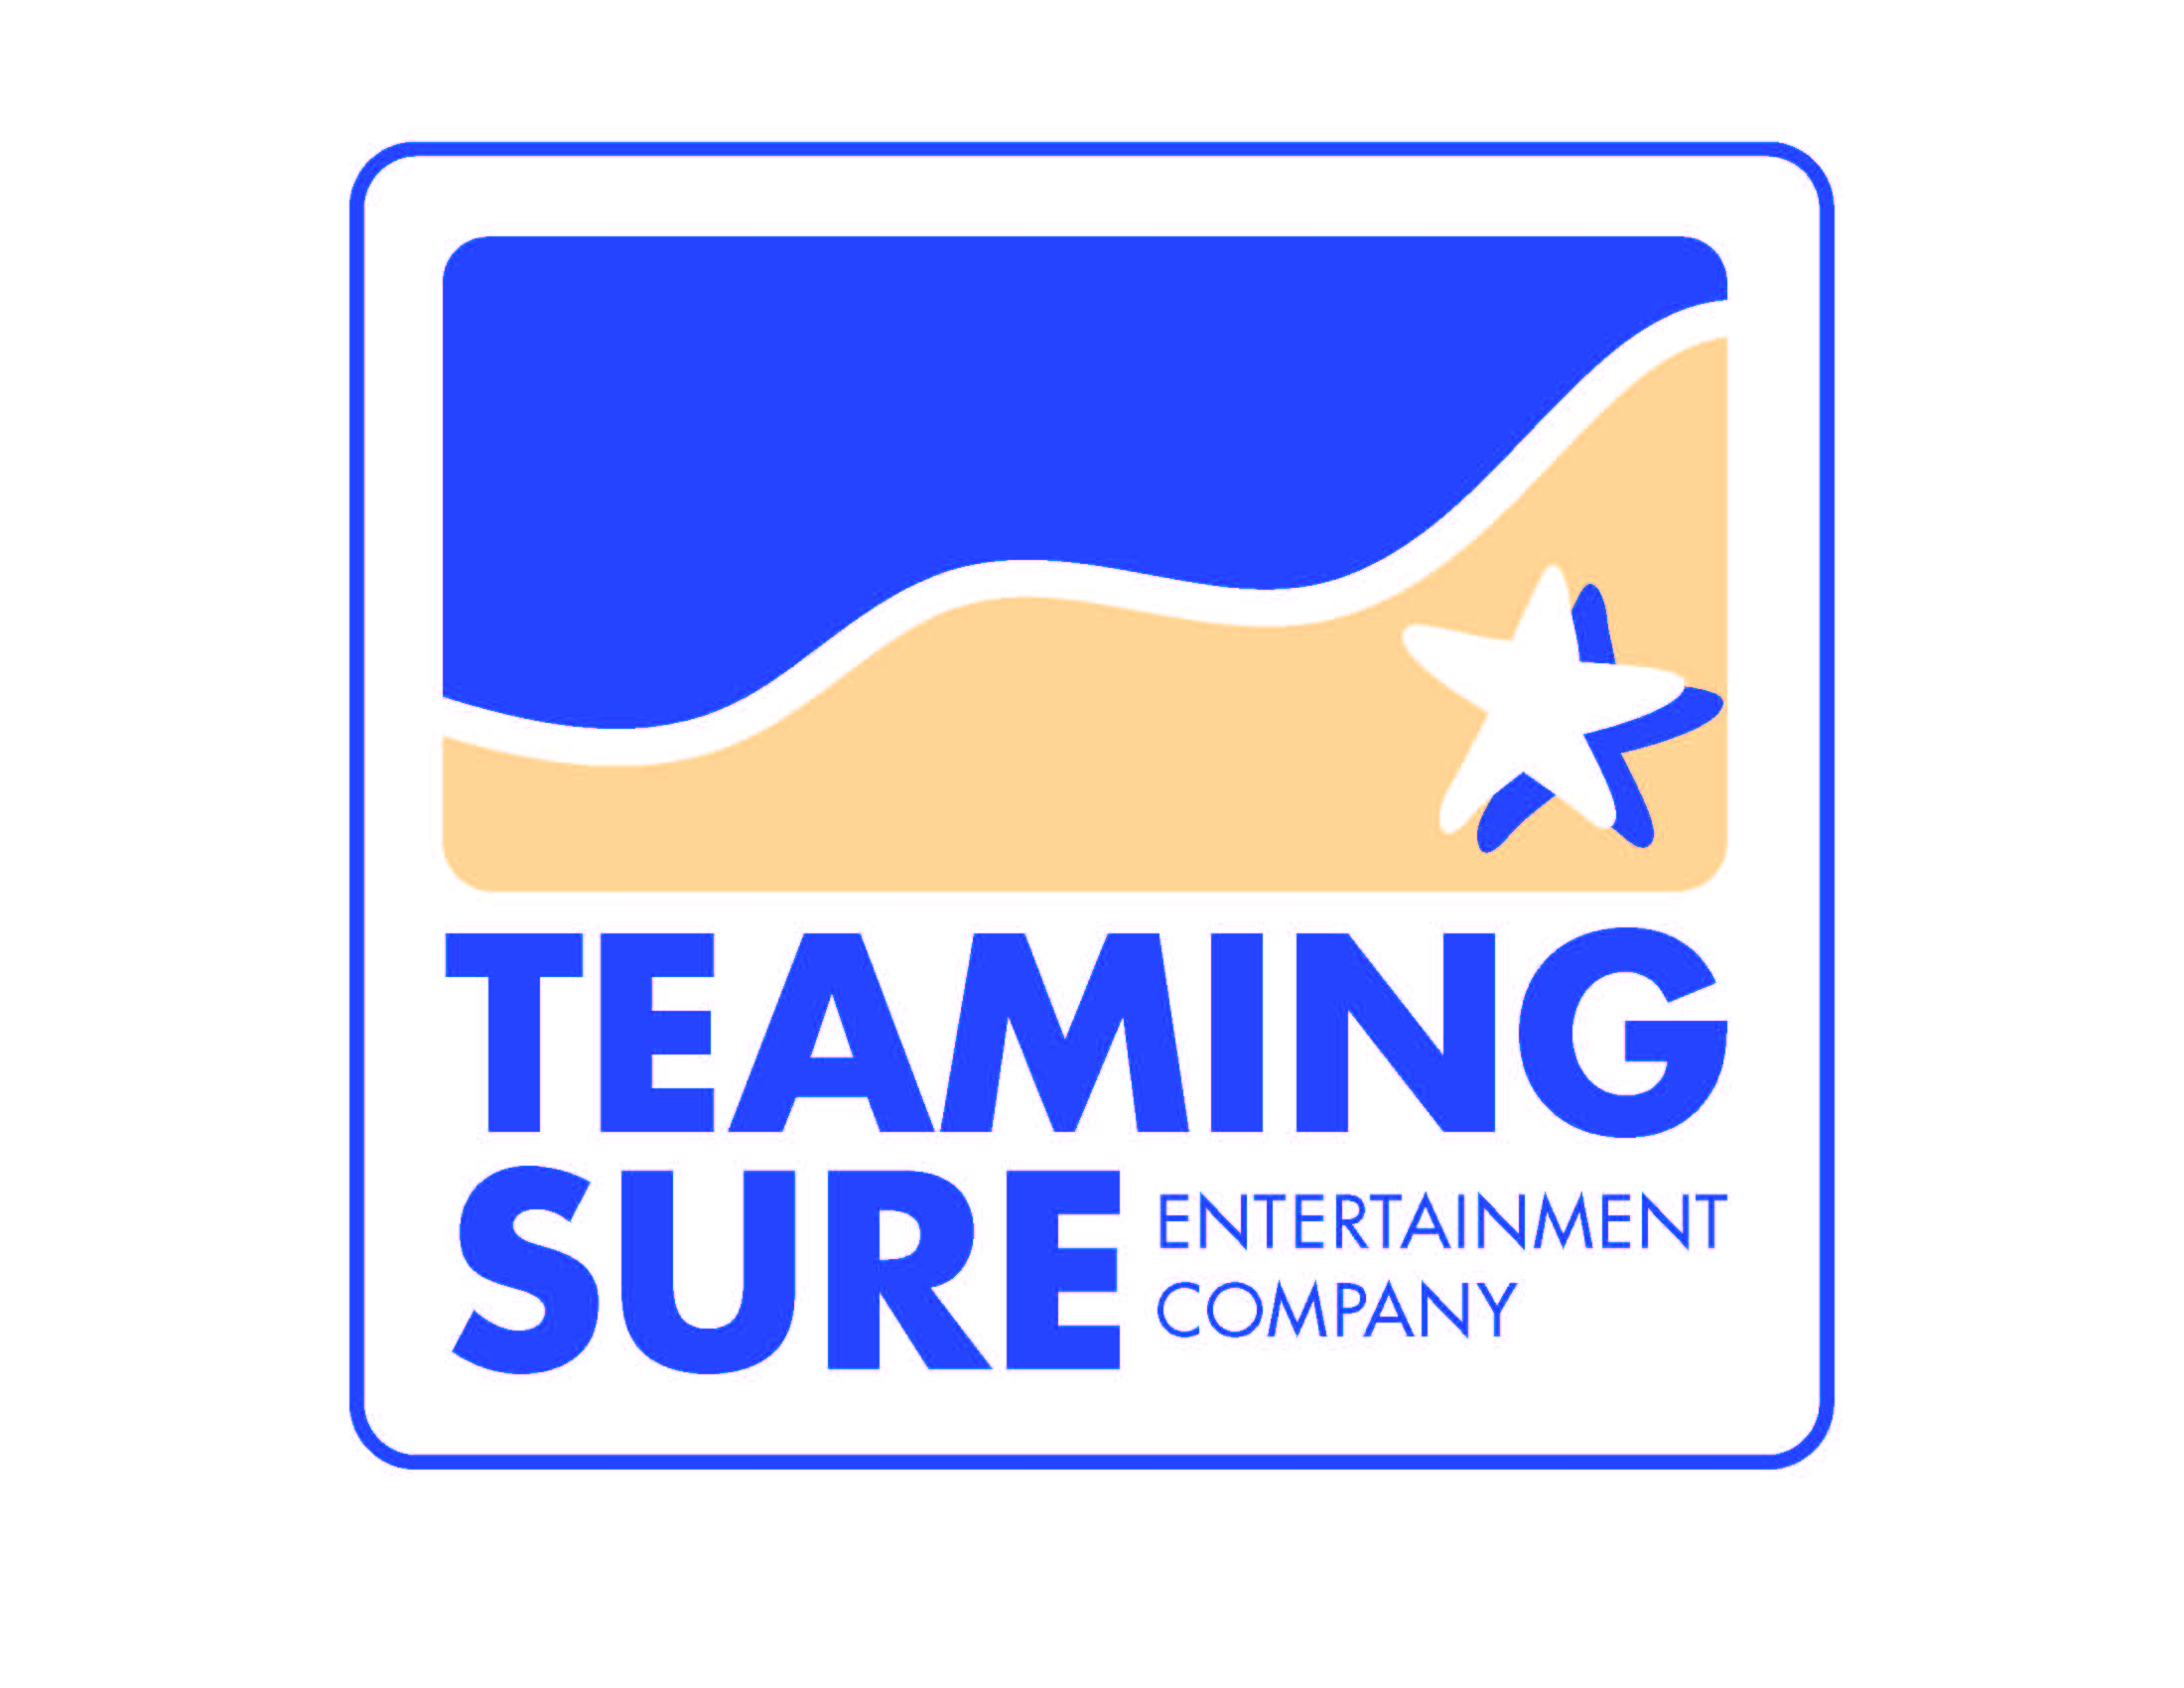 Teaming Sure logo for business card 4-25-18.jpg